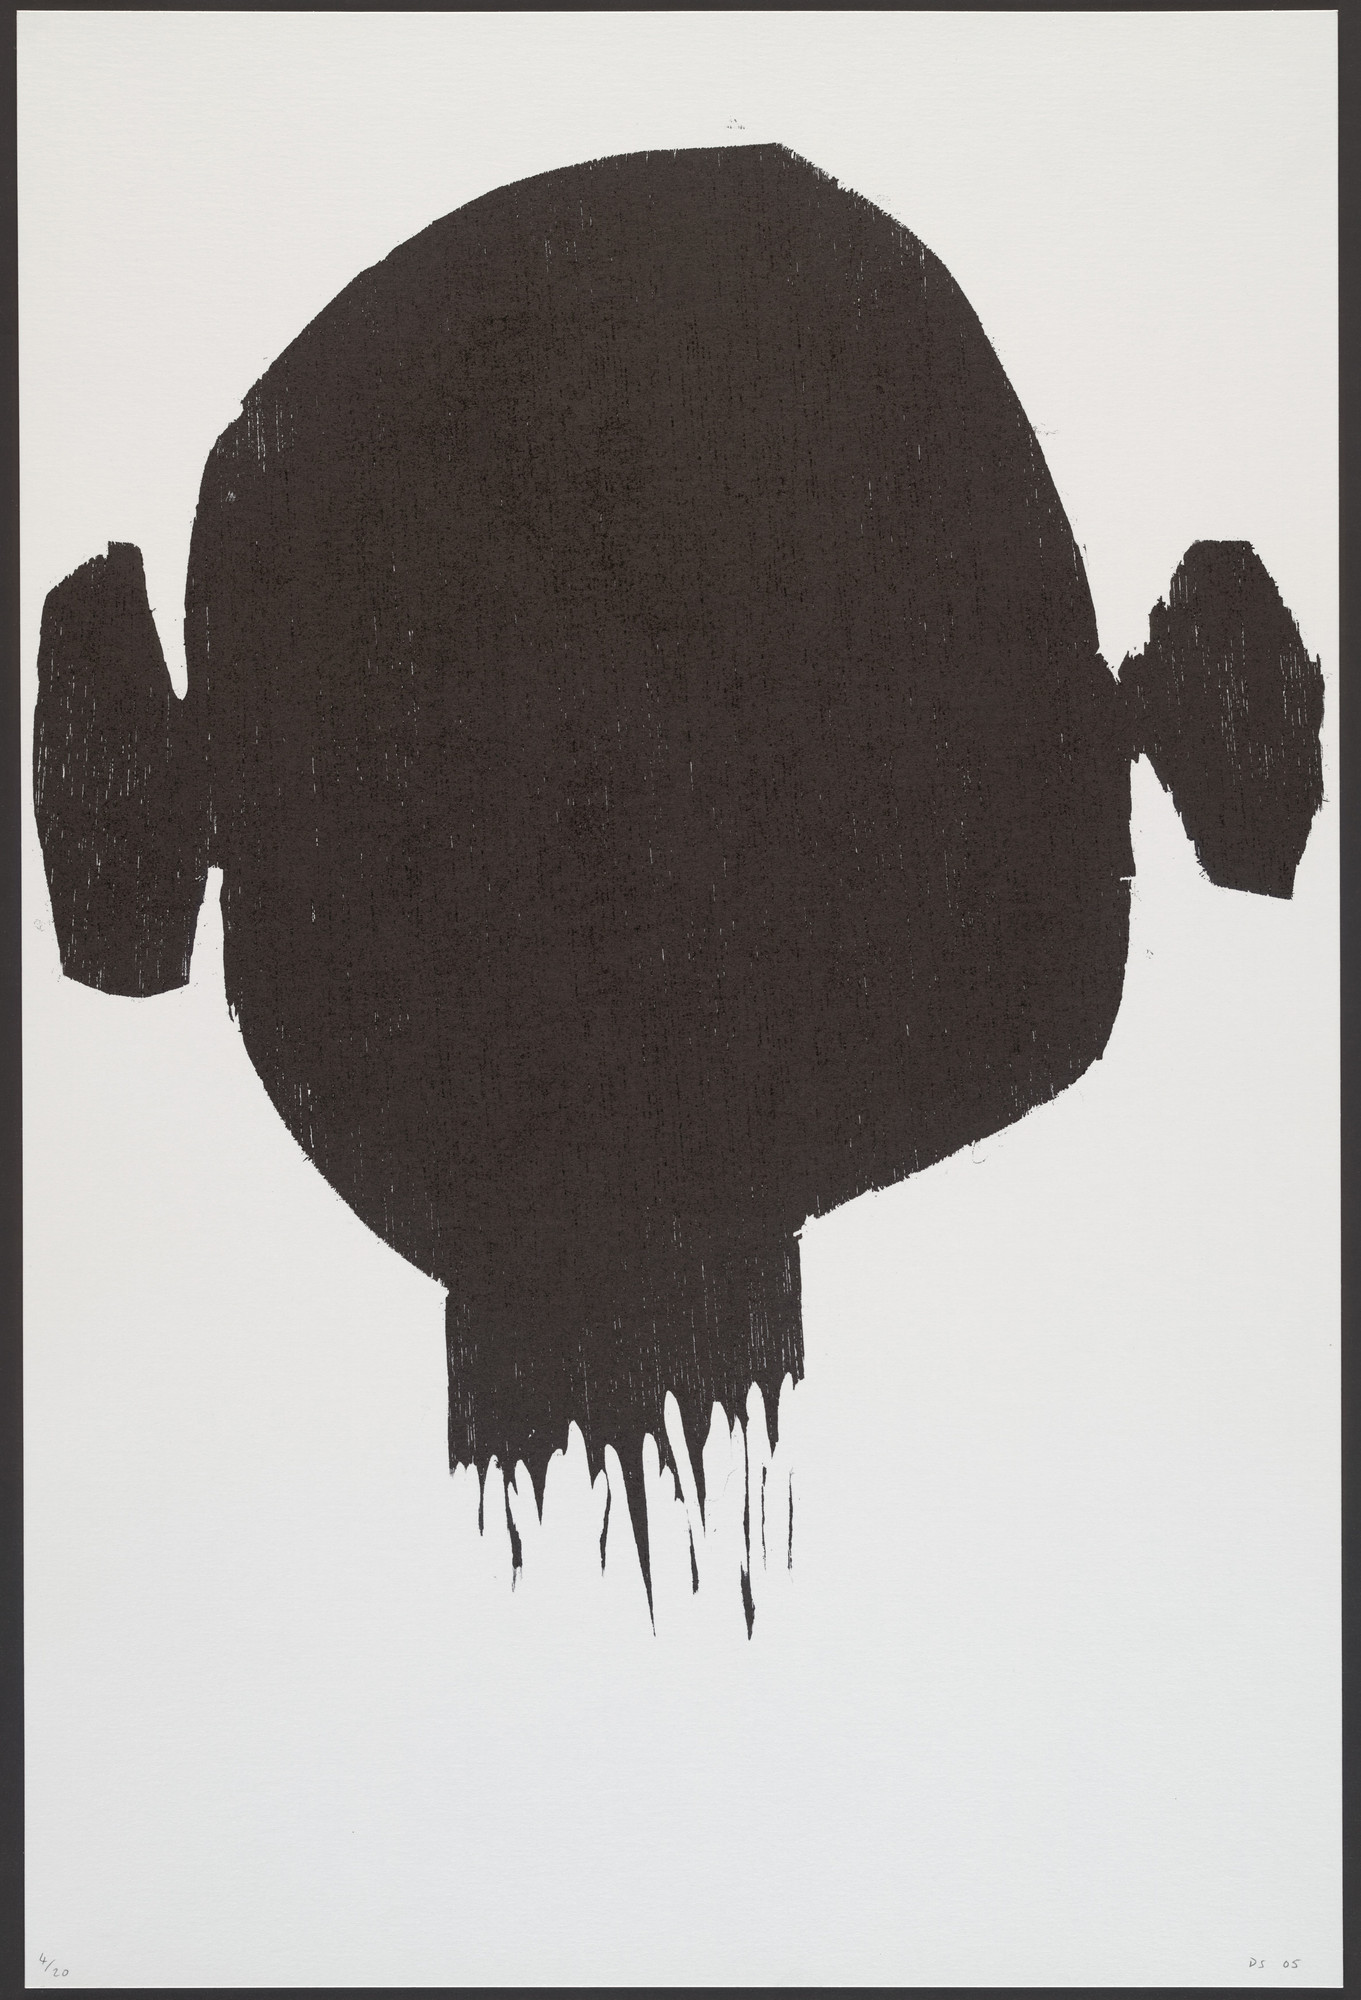 David Shrigley. Untitled (Severed head) from an untitled portfolio. 2005 | MoMA